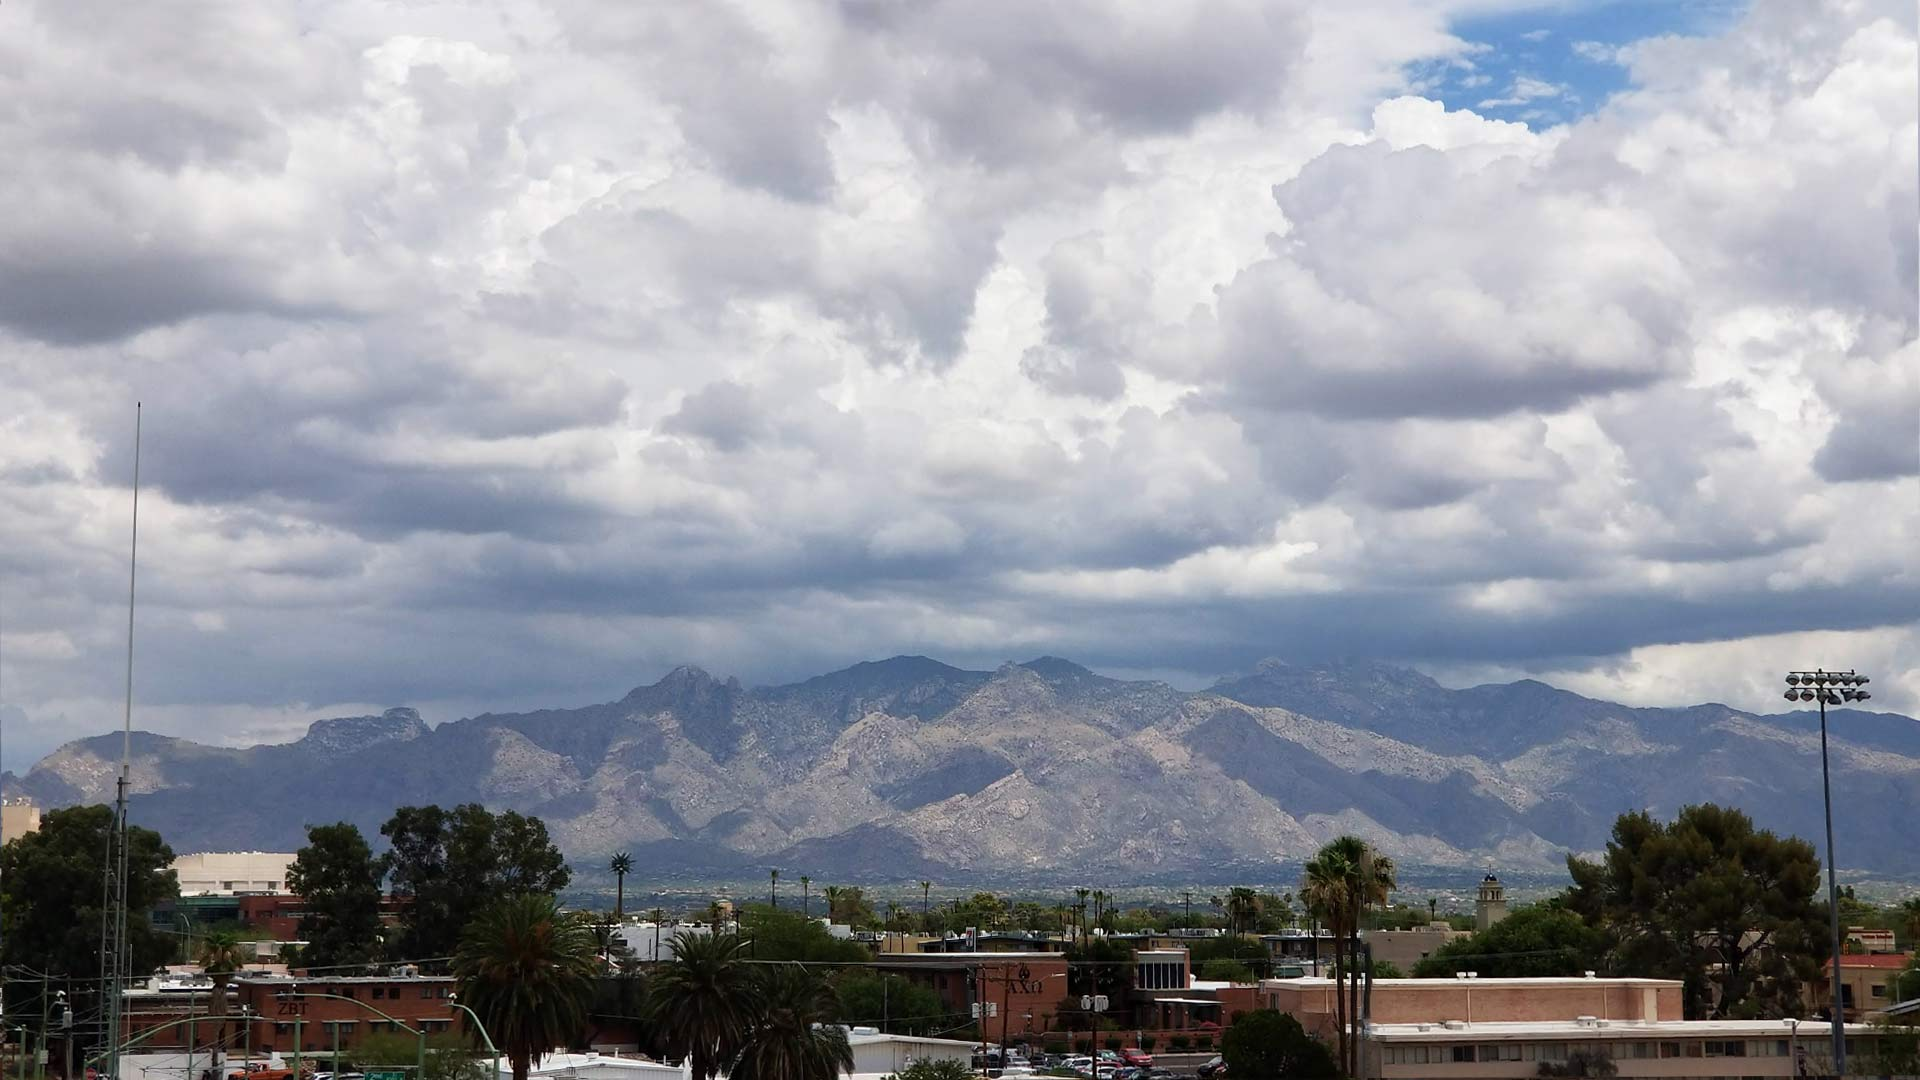 Monsoon clouds build up over the Catalina Mountains in this photo shot from the University of Arizona campus. From July 2018.